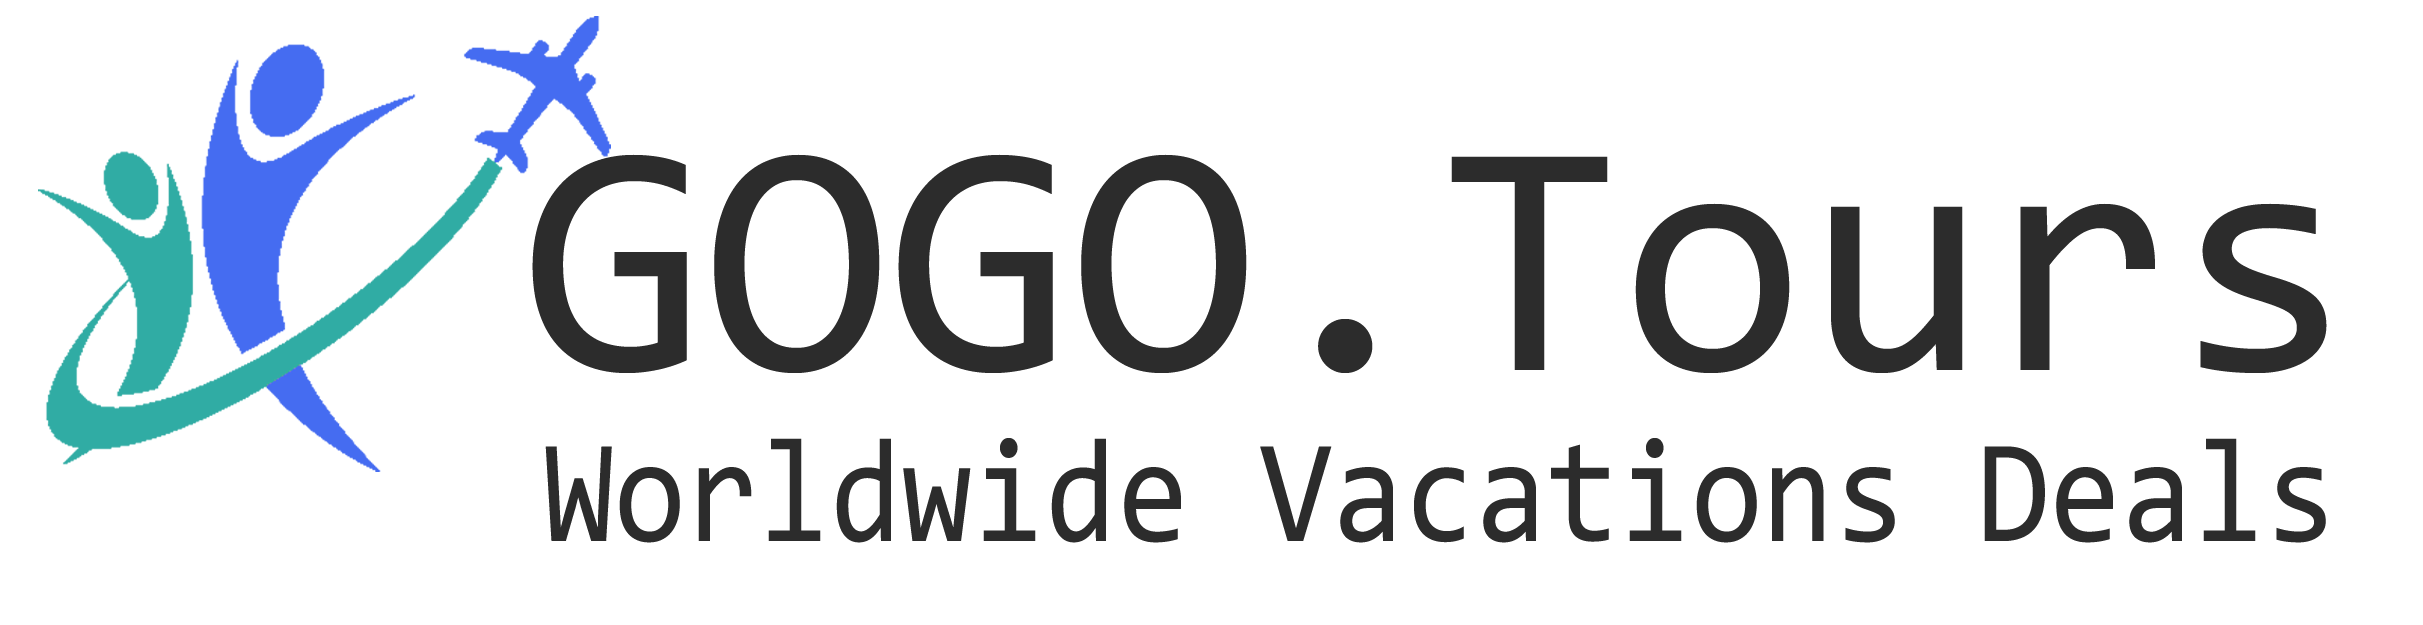 GOGO Tours: Worldwide Vacations Packages Deals & Best Travel Agency